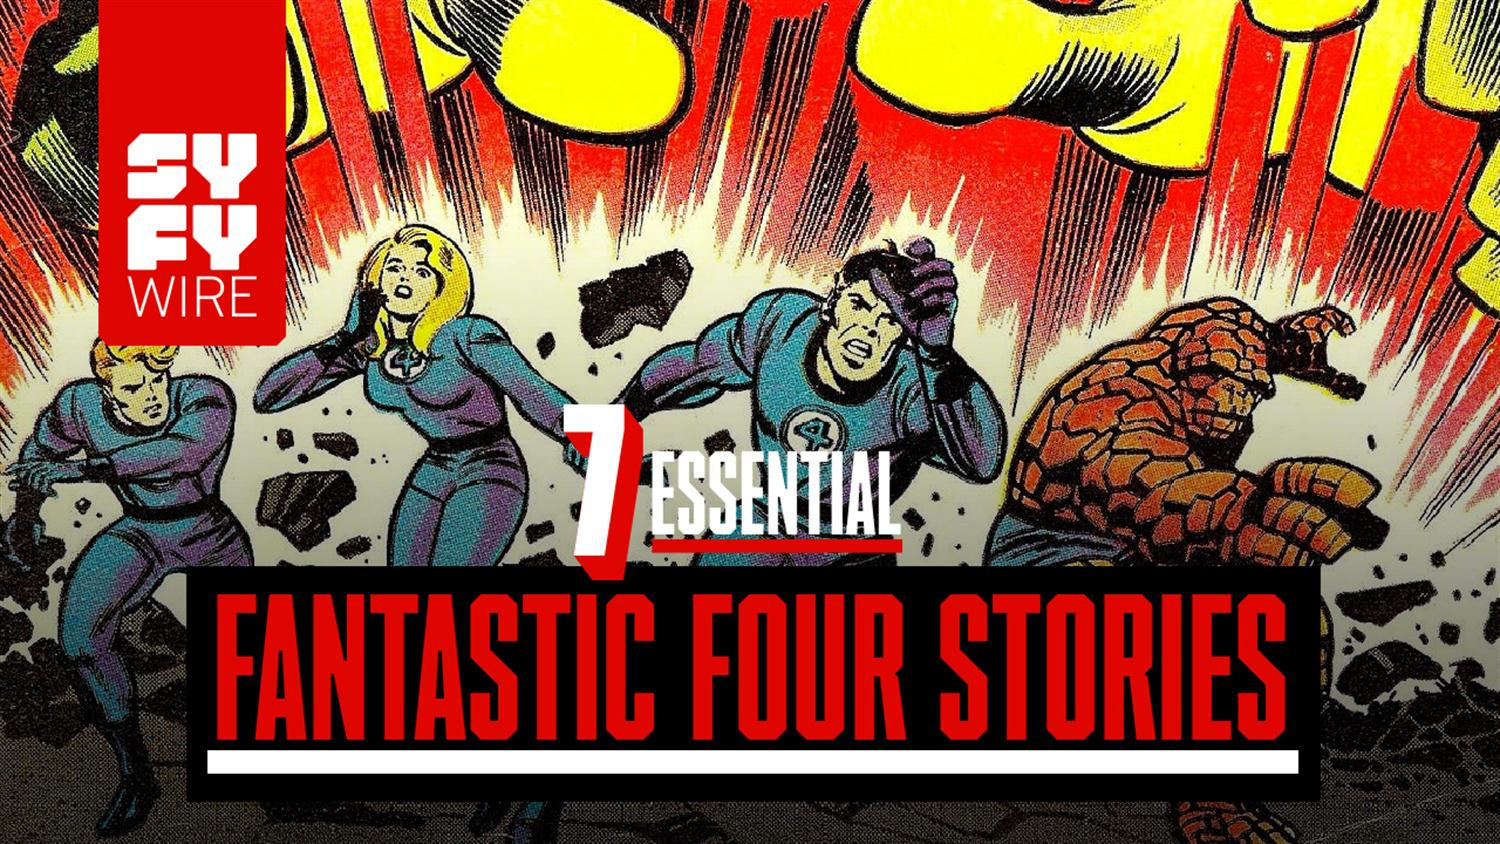 7 Essential Fantastic Four Stories